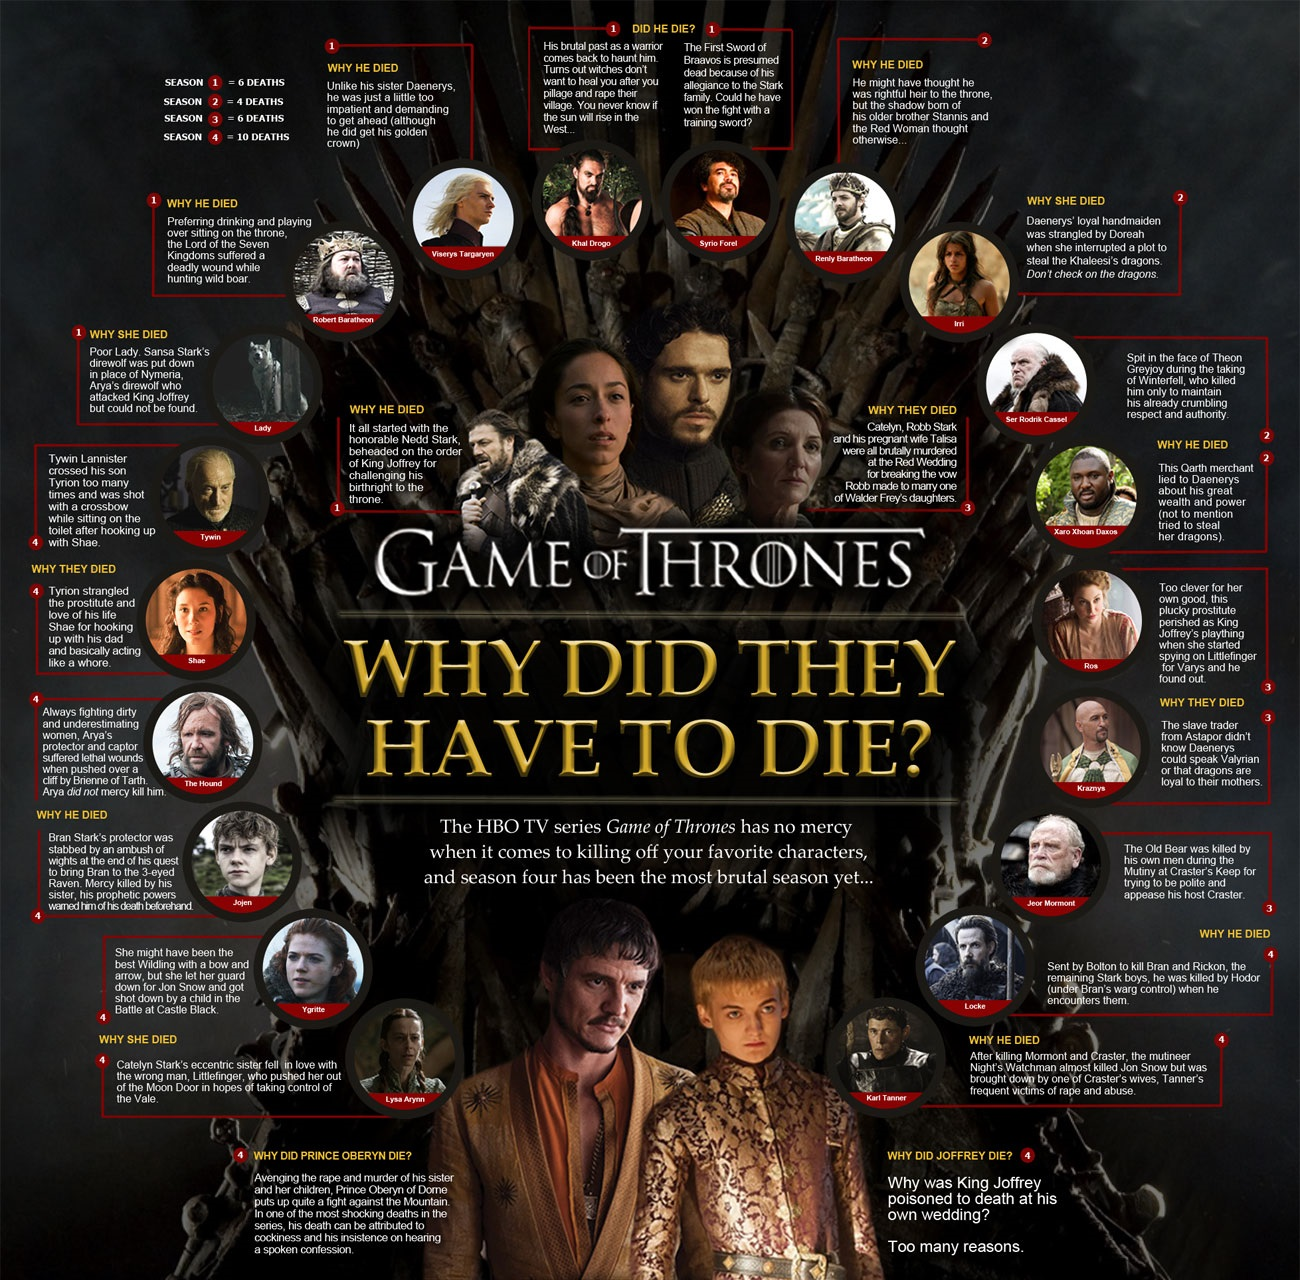 Game of Thrones Infographic: Why Did They Have to Die?